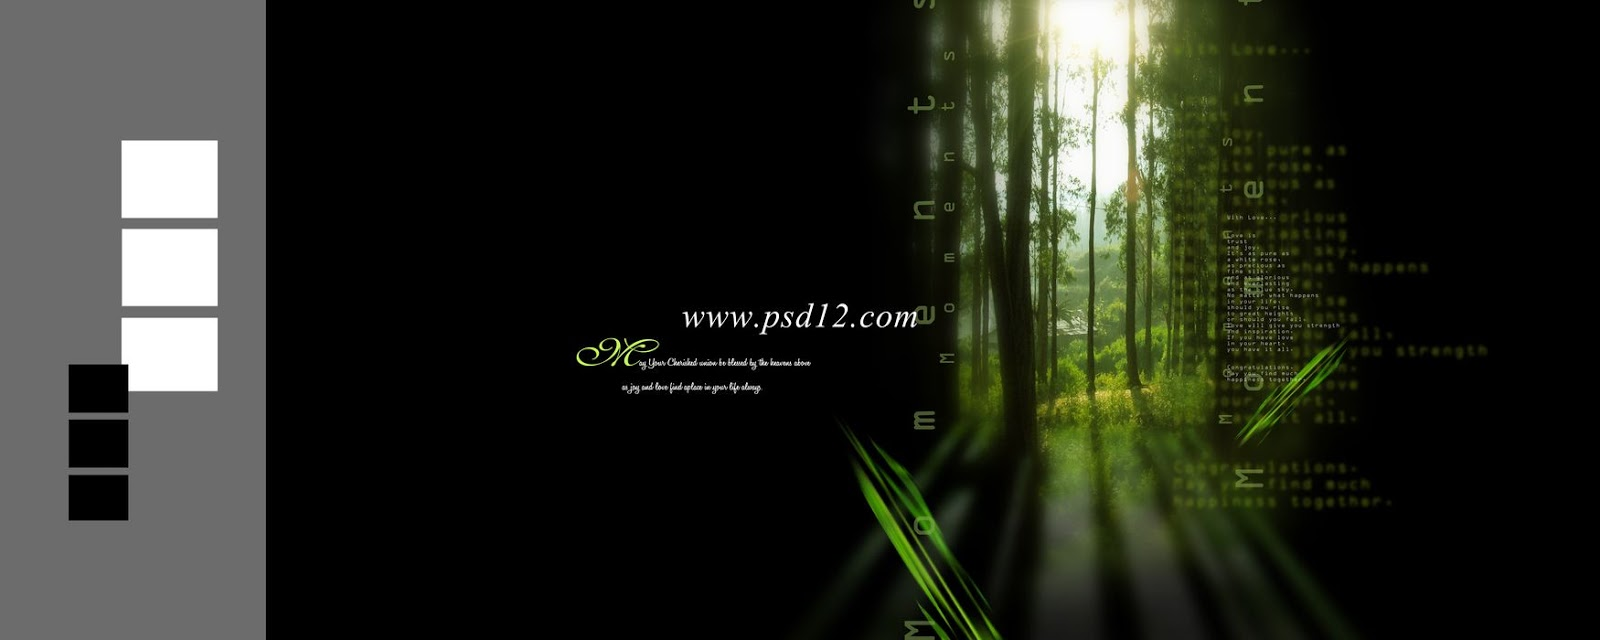 Karizma Background Psd | Joy Studio Design Gallery - Best ...